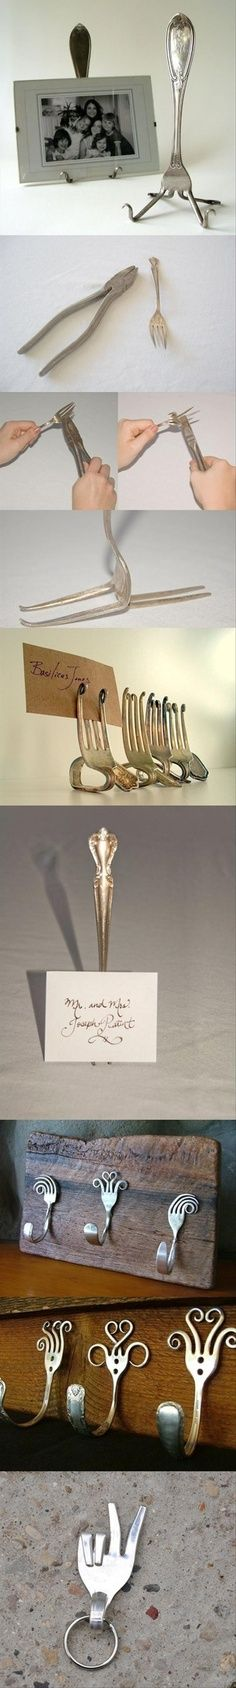 love the last one...the peace sign made out of a fork.